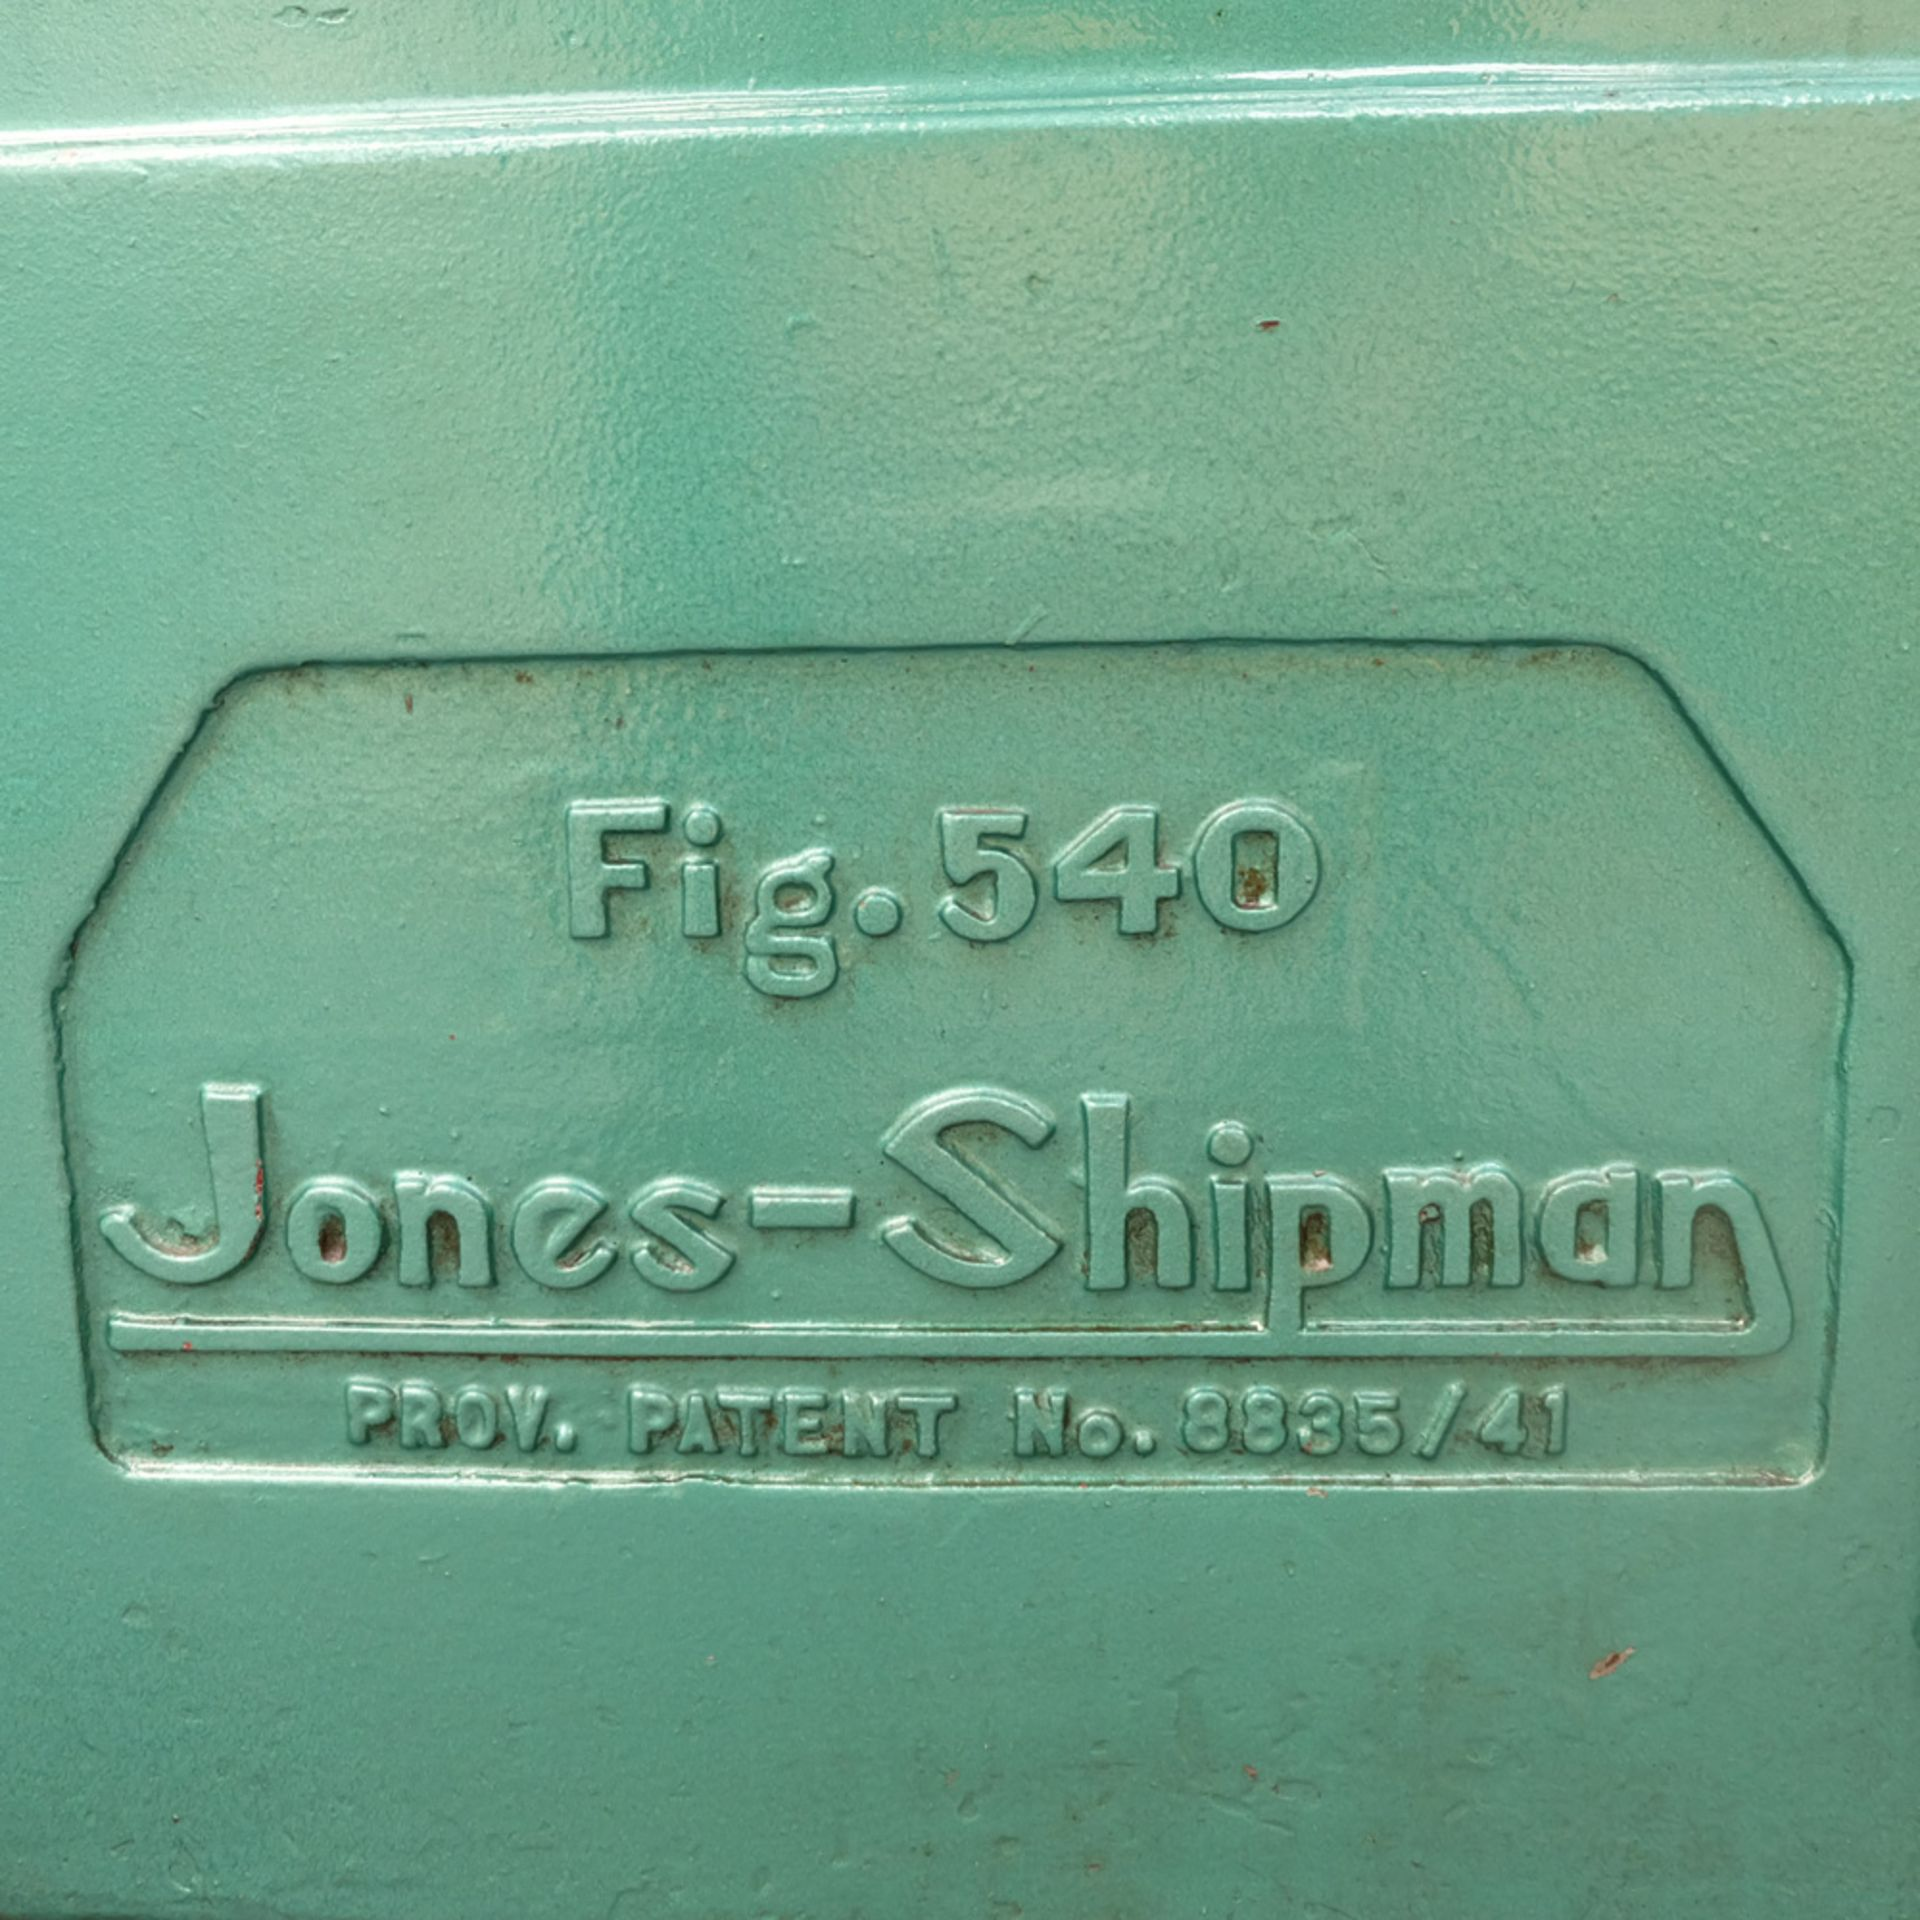 "Jones & Shipman 540 Tool Room Surface Grinder. Capacity 18"" x 6"". - Image 7 of 7"